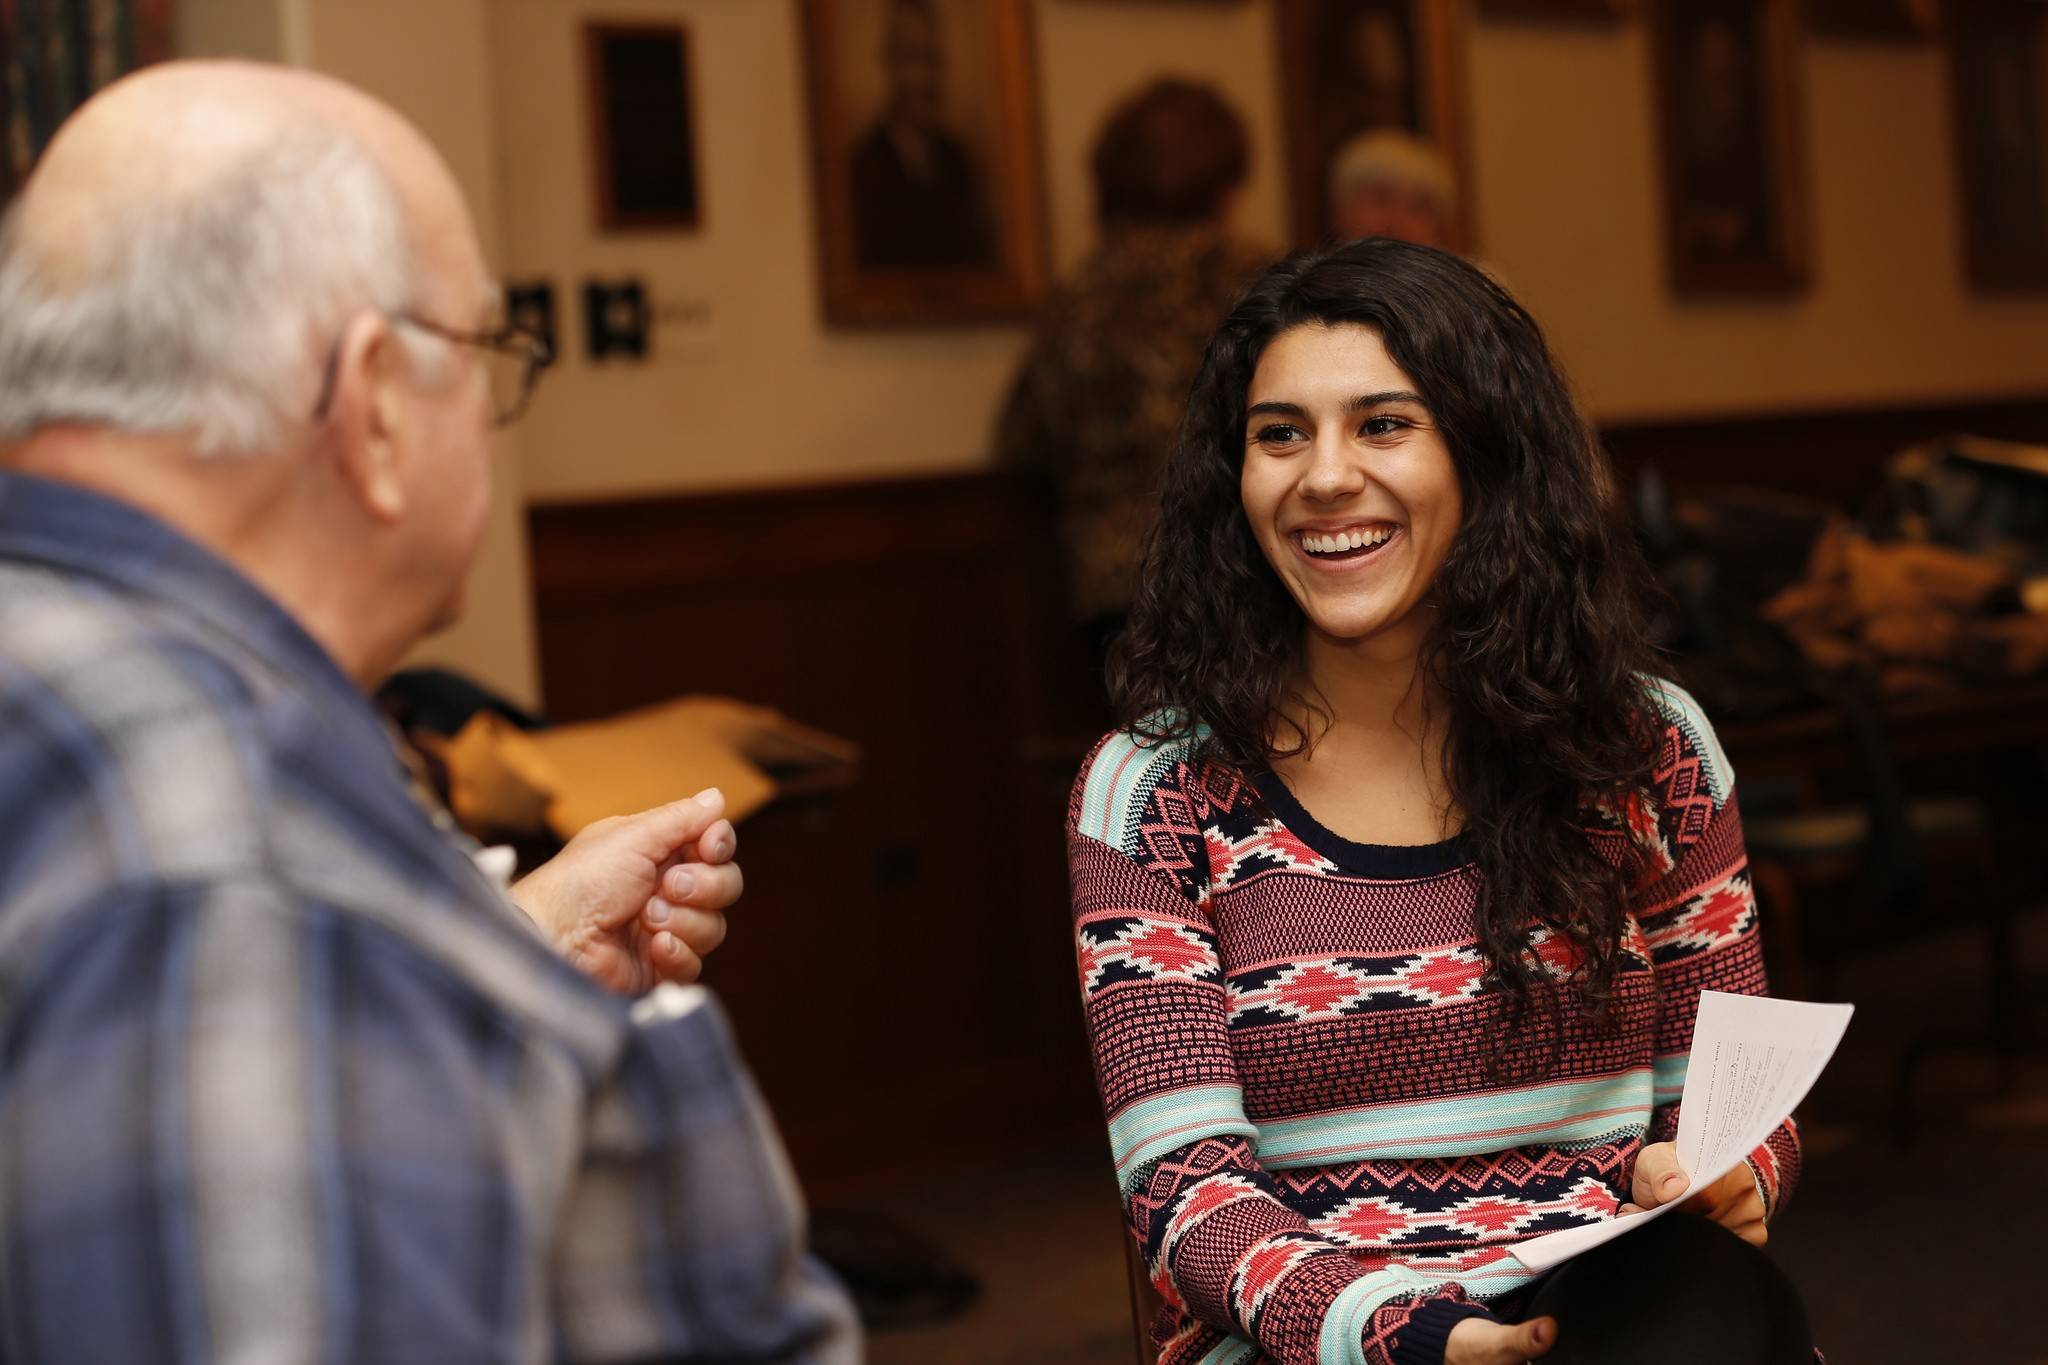 Nicolette Quagliata, a North Central College sophomore from Bartlett, chats with Jerry Robbins during a recent visit to Monarch Landing, a Naperville retirement community. Roughly 20 North Central students have been establishing relationships for sharing advice, gaining historical perspectives and building friendships.